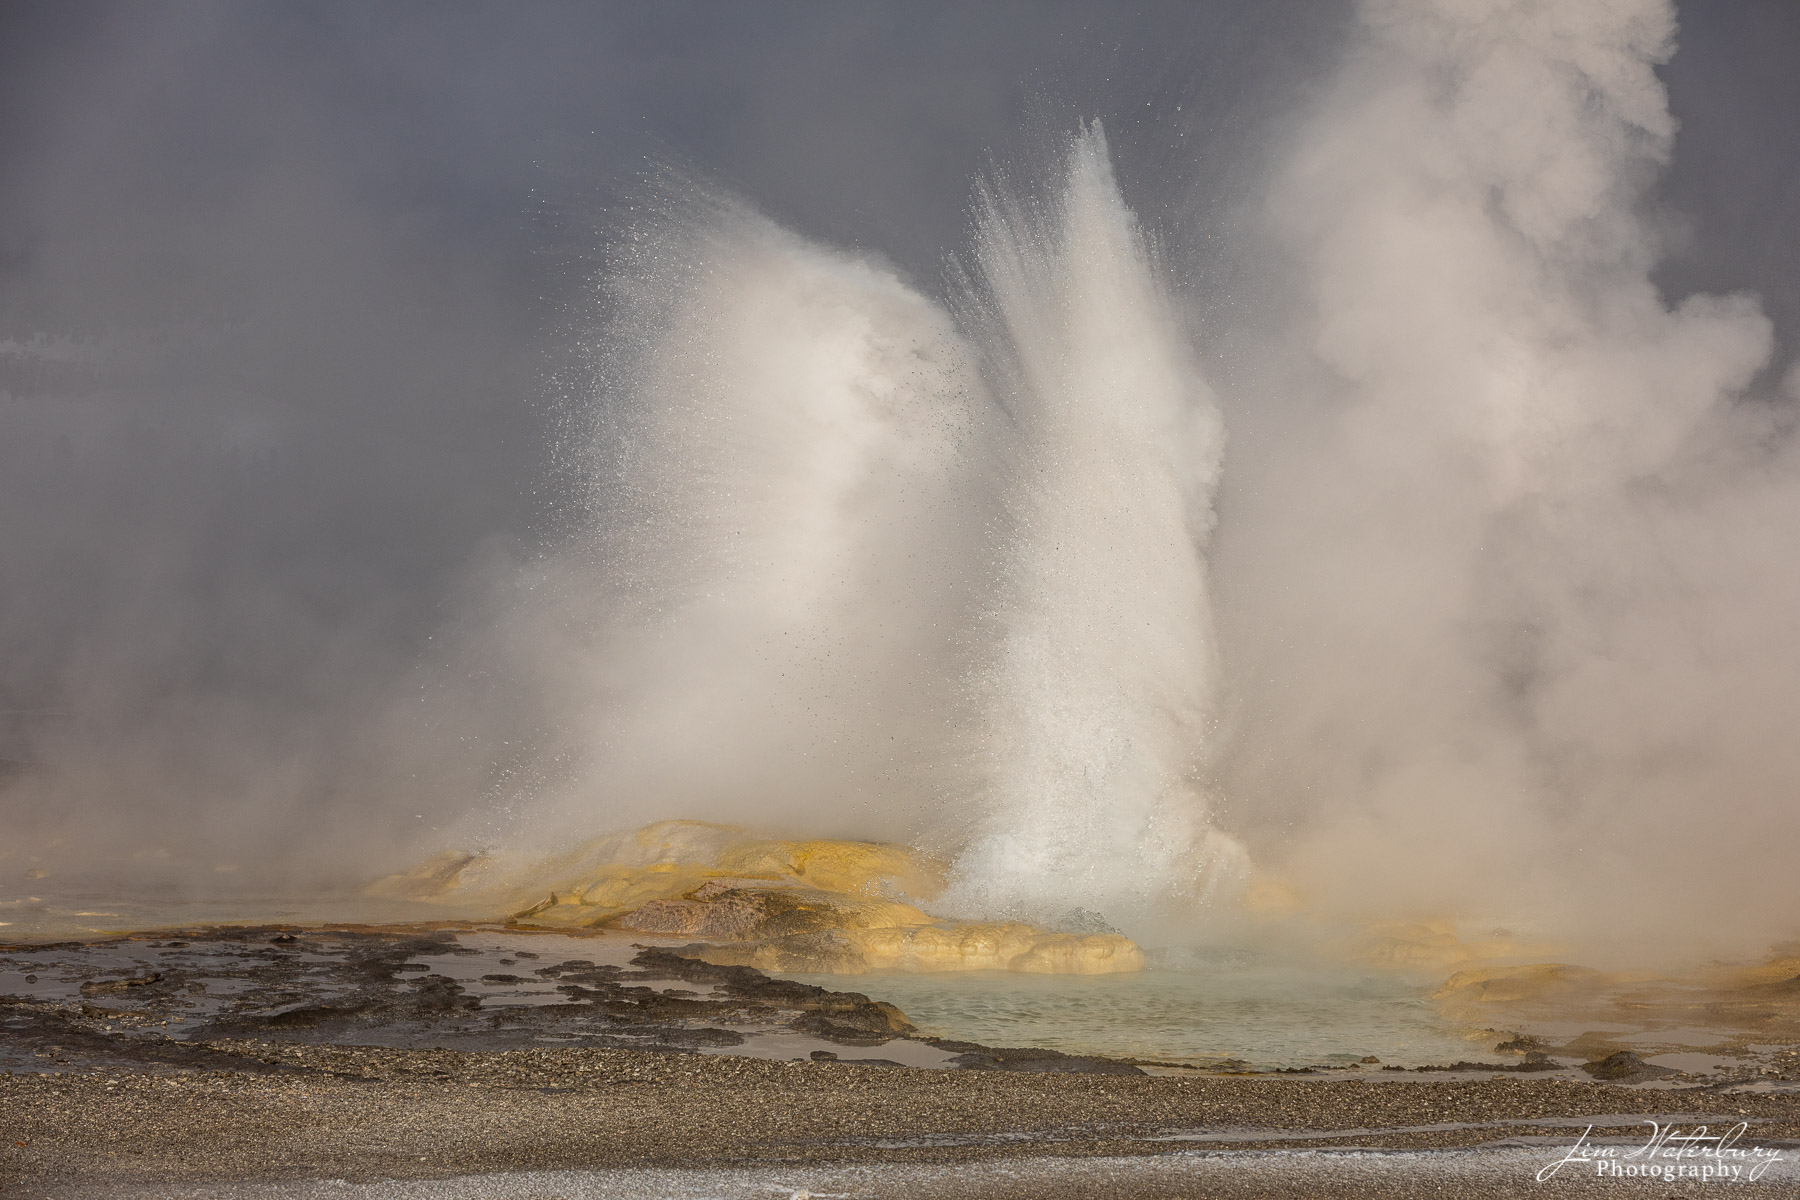 Eruption of the Clepsydra geyser in the Lower Geyer Basin of Yellowstone.